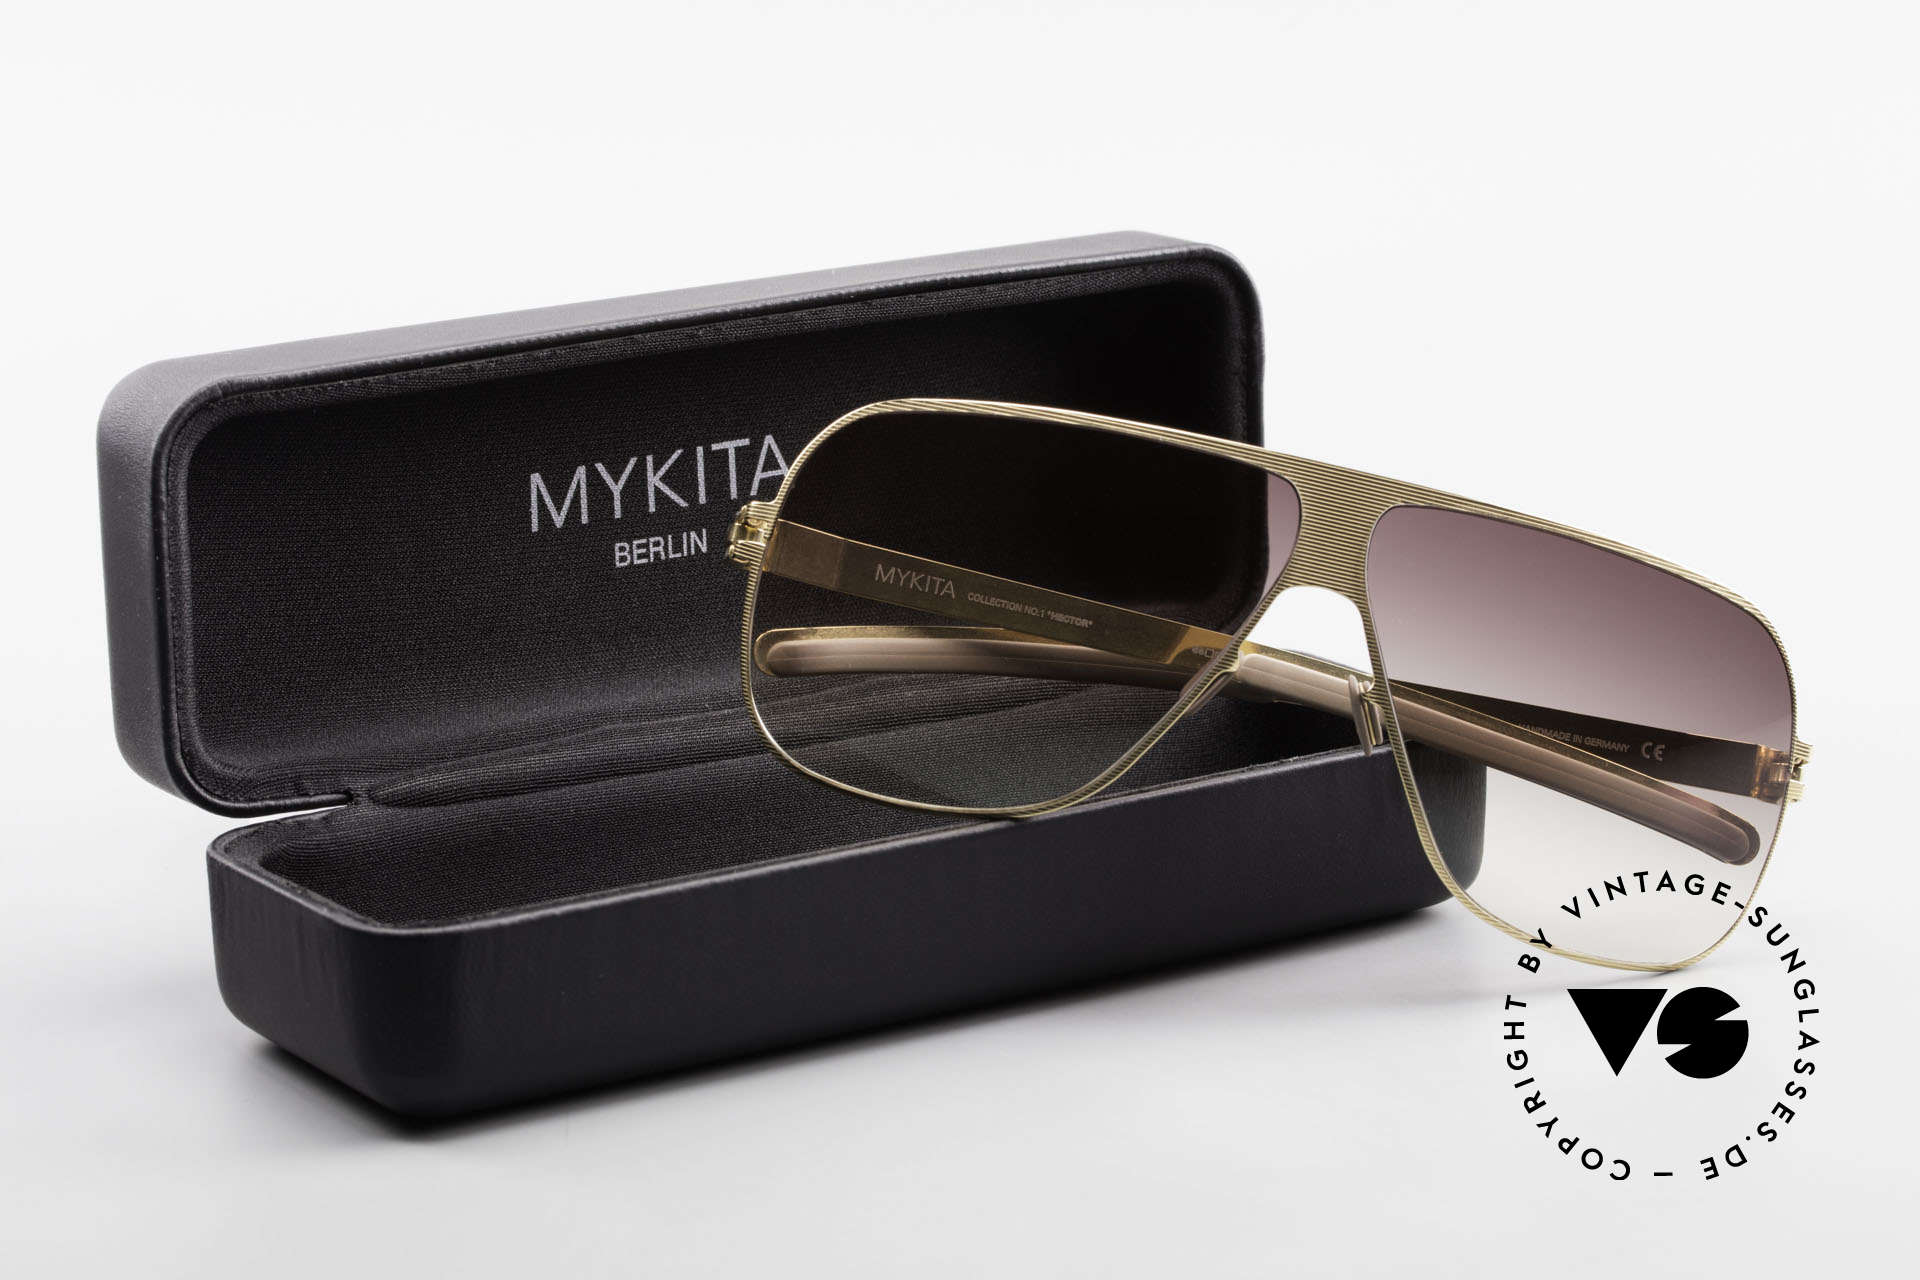 Mykita Hector Vintage Mykita Frame From 2009, Size: large, Made for Men